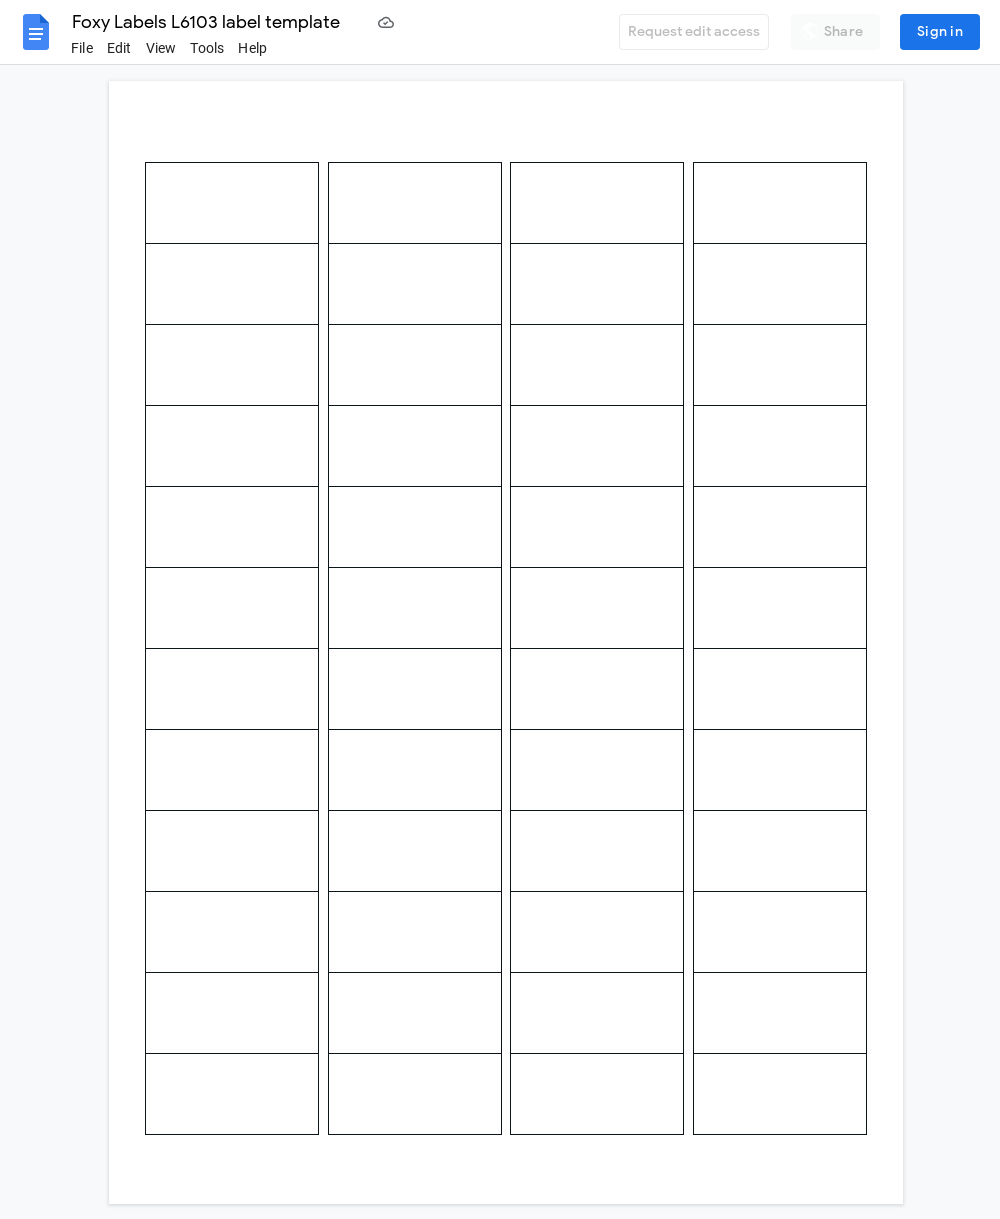 Avery L6103 Label Template